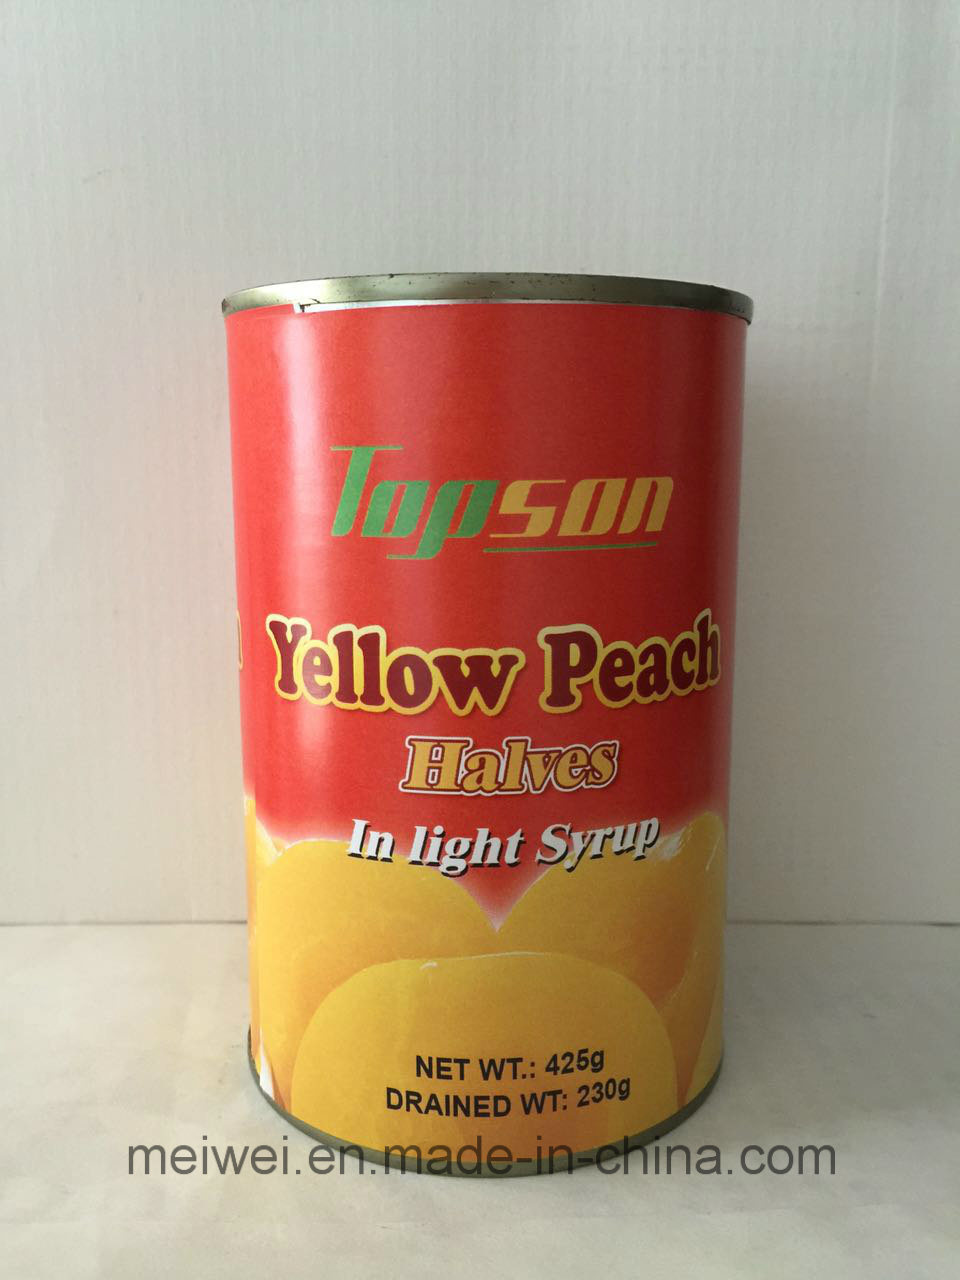 Canned Yellow Peach Halves in Light Syrup